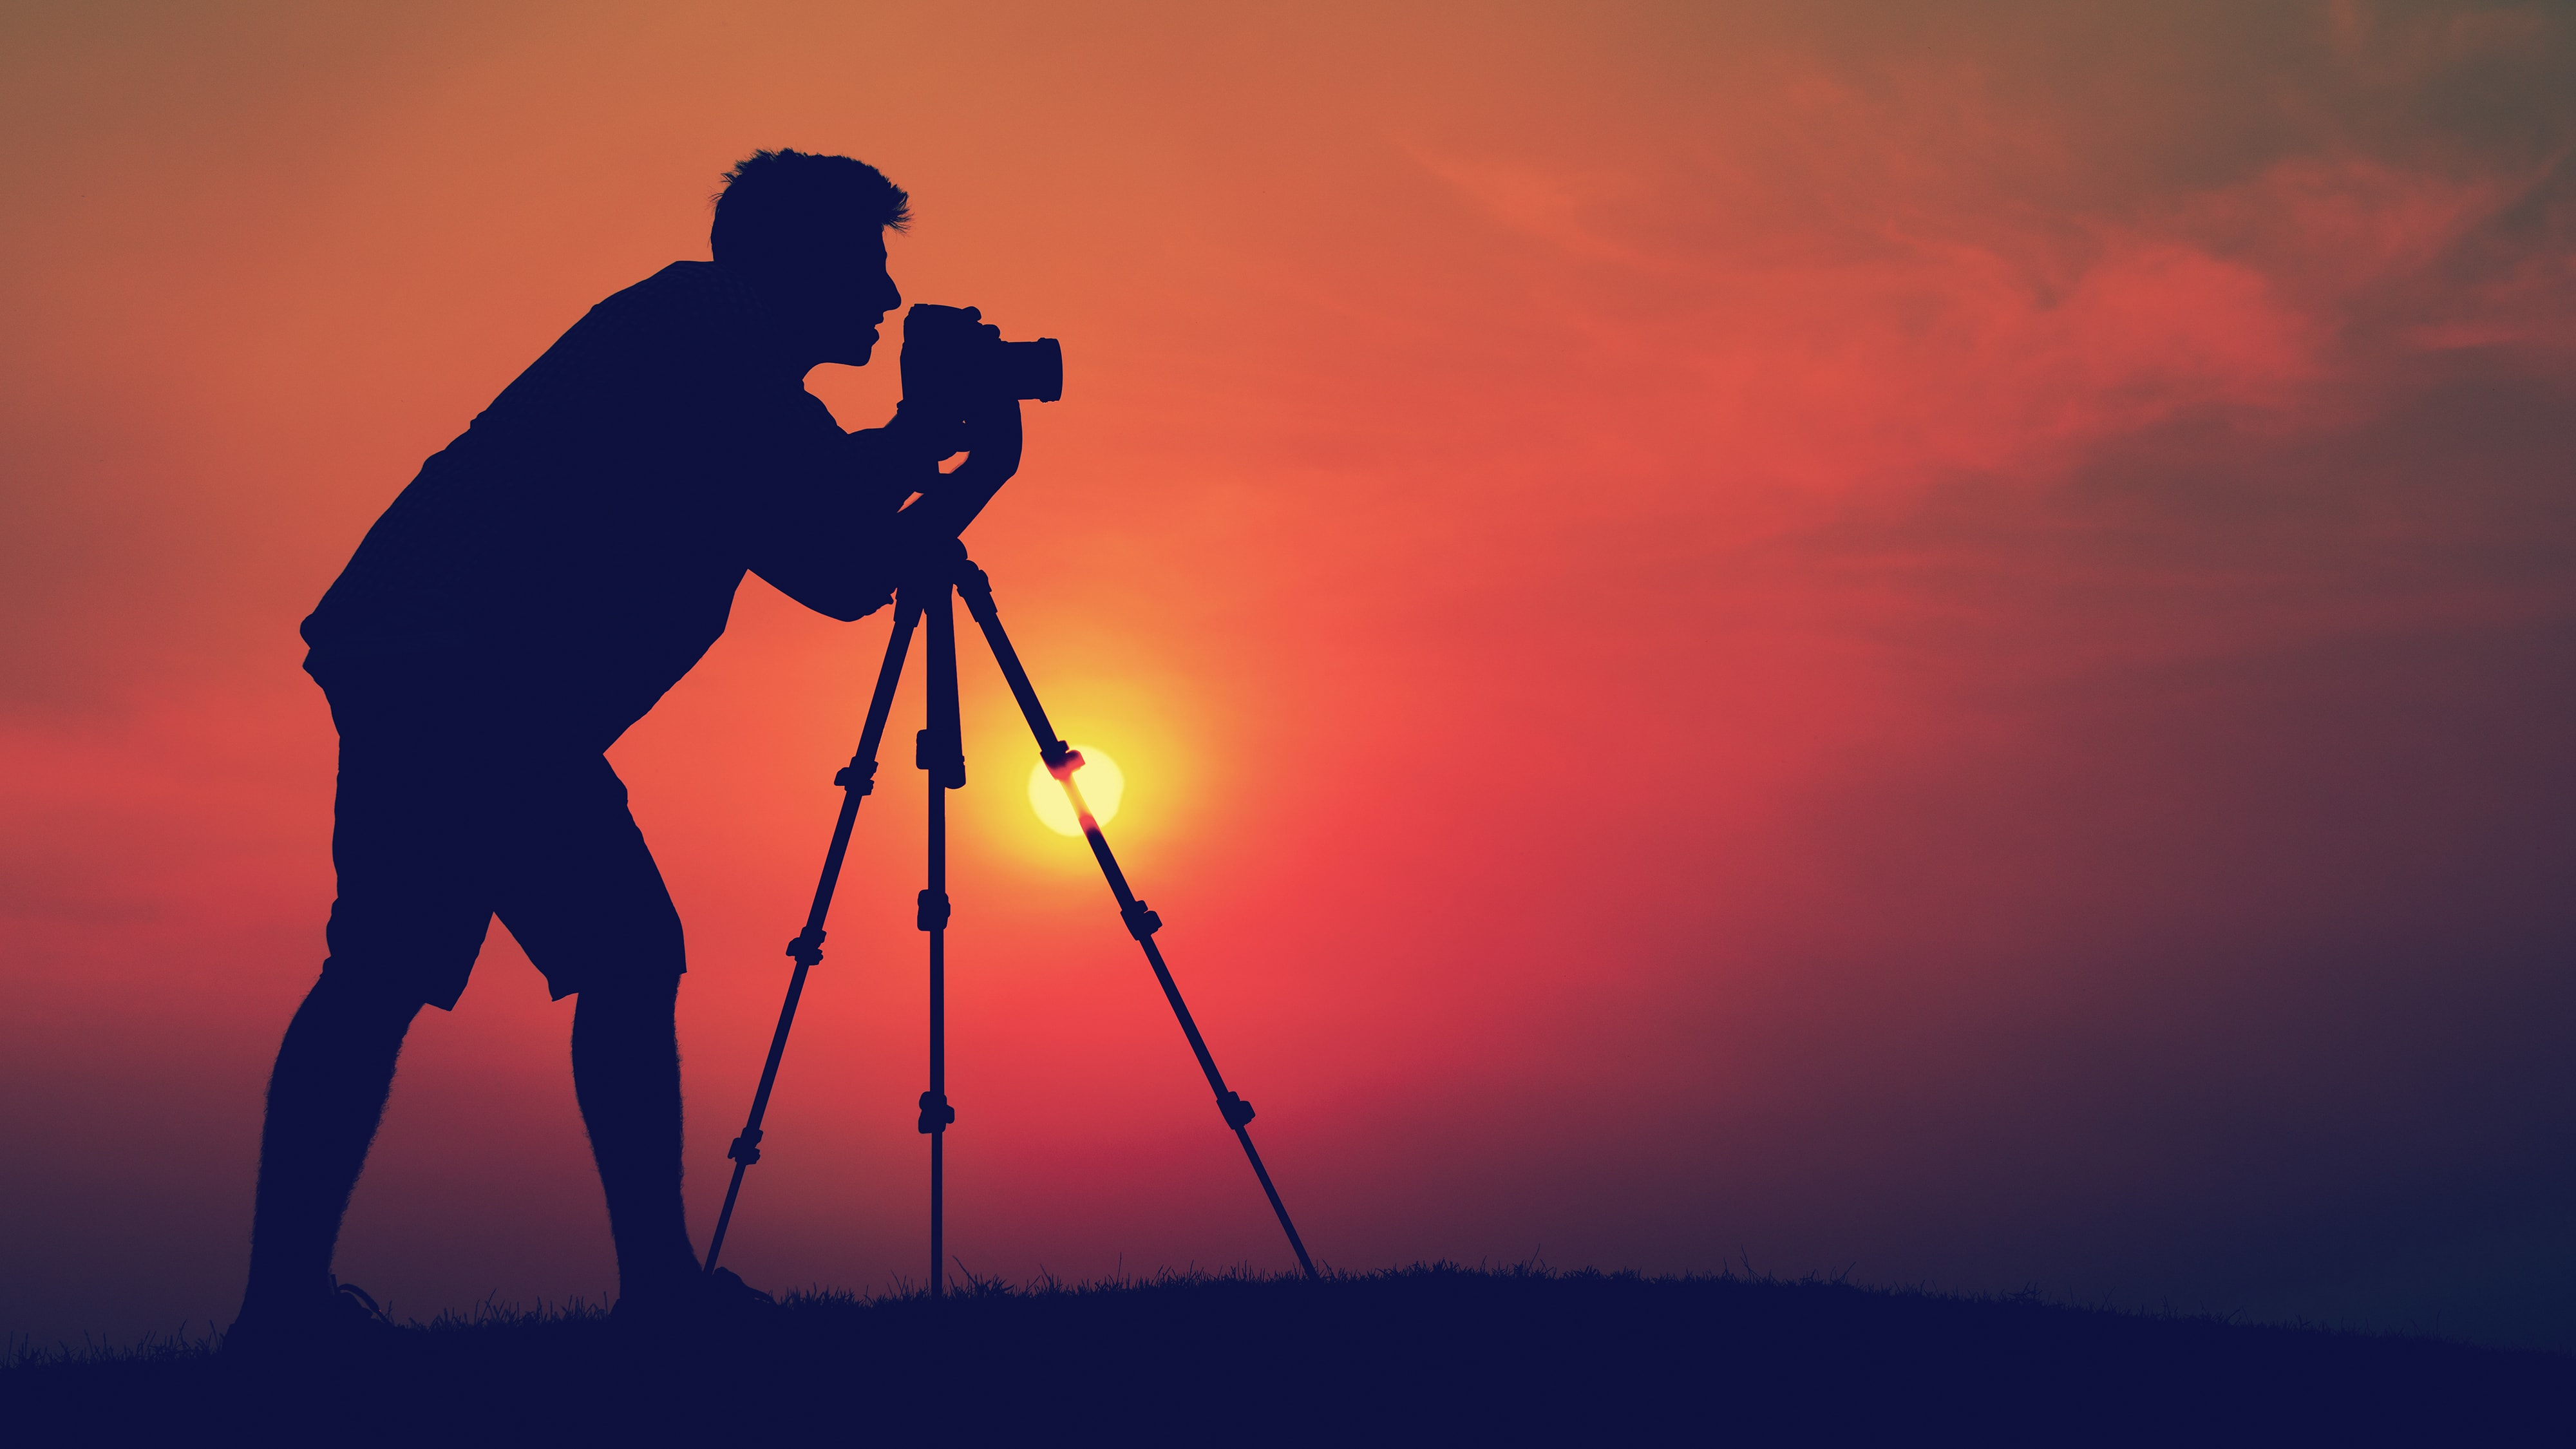 What are the best photography schools in India? - Quora